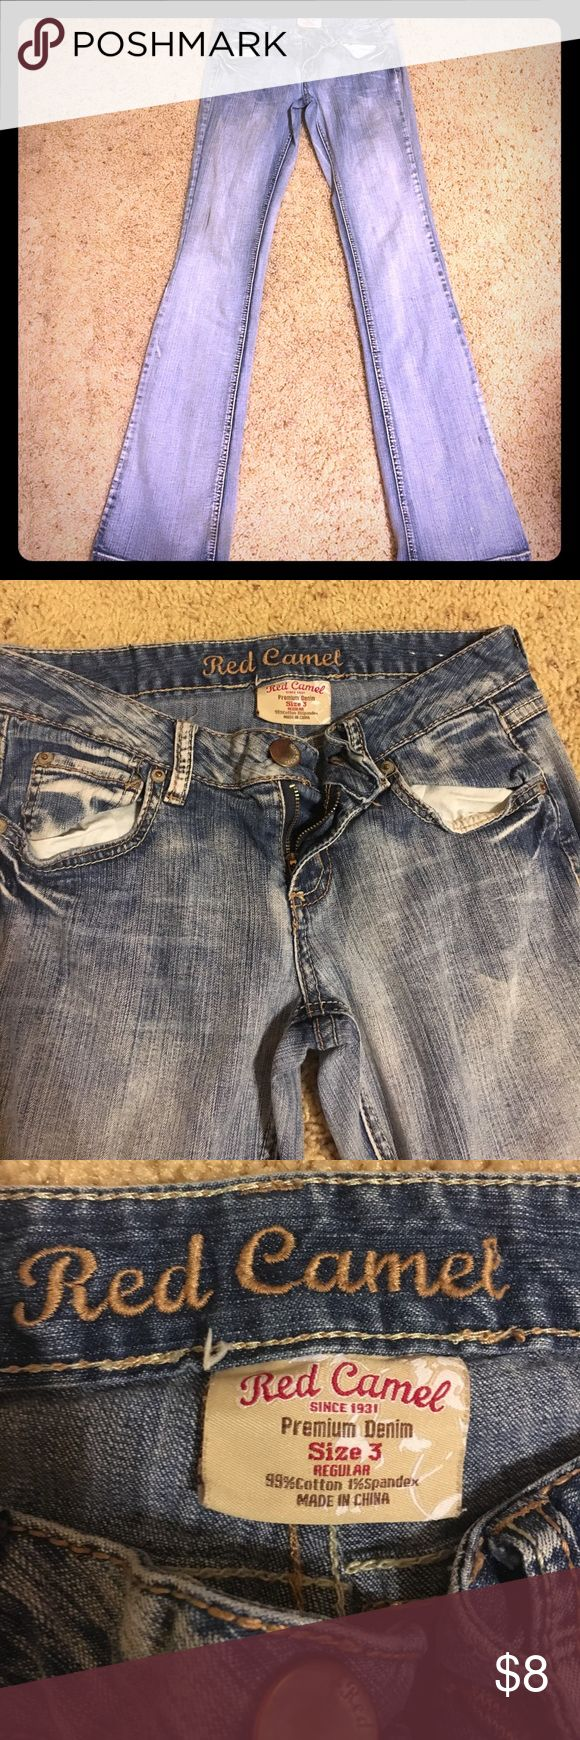 Red camel jeans Preloved jeans. Starting to fray at bottom Red Camel Jeans Boot Cut